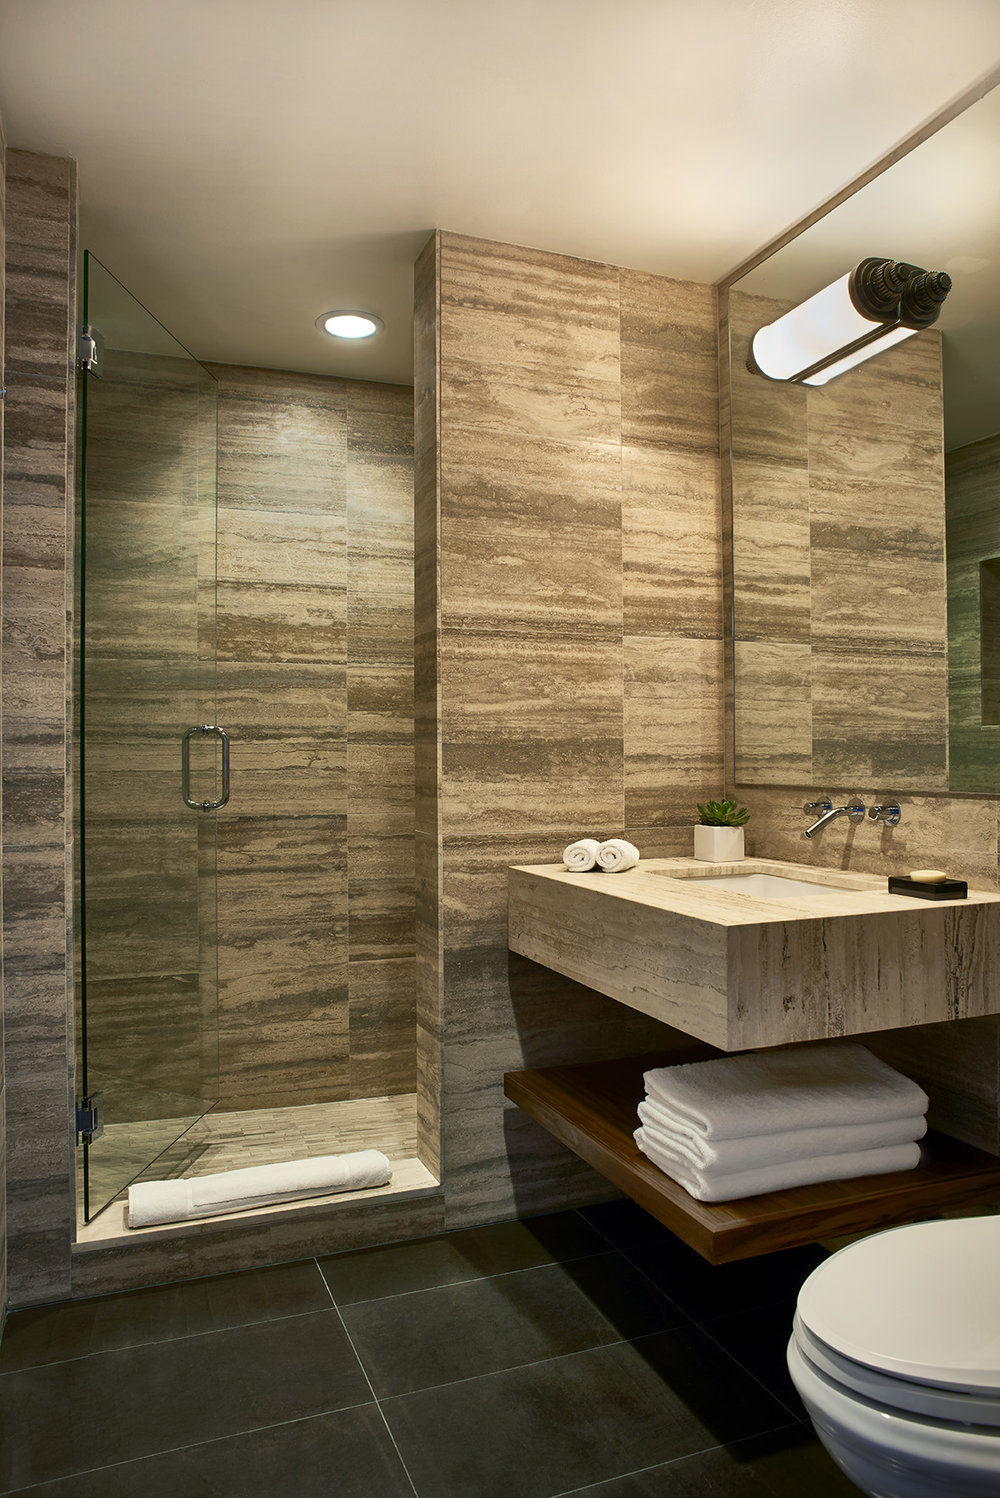 Nautilus-Penthouse-Bathroom.jpg